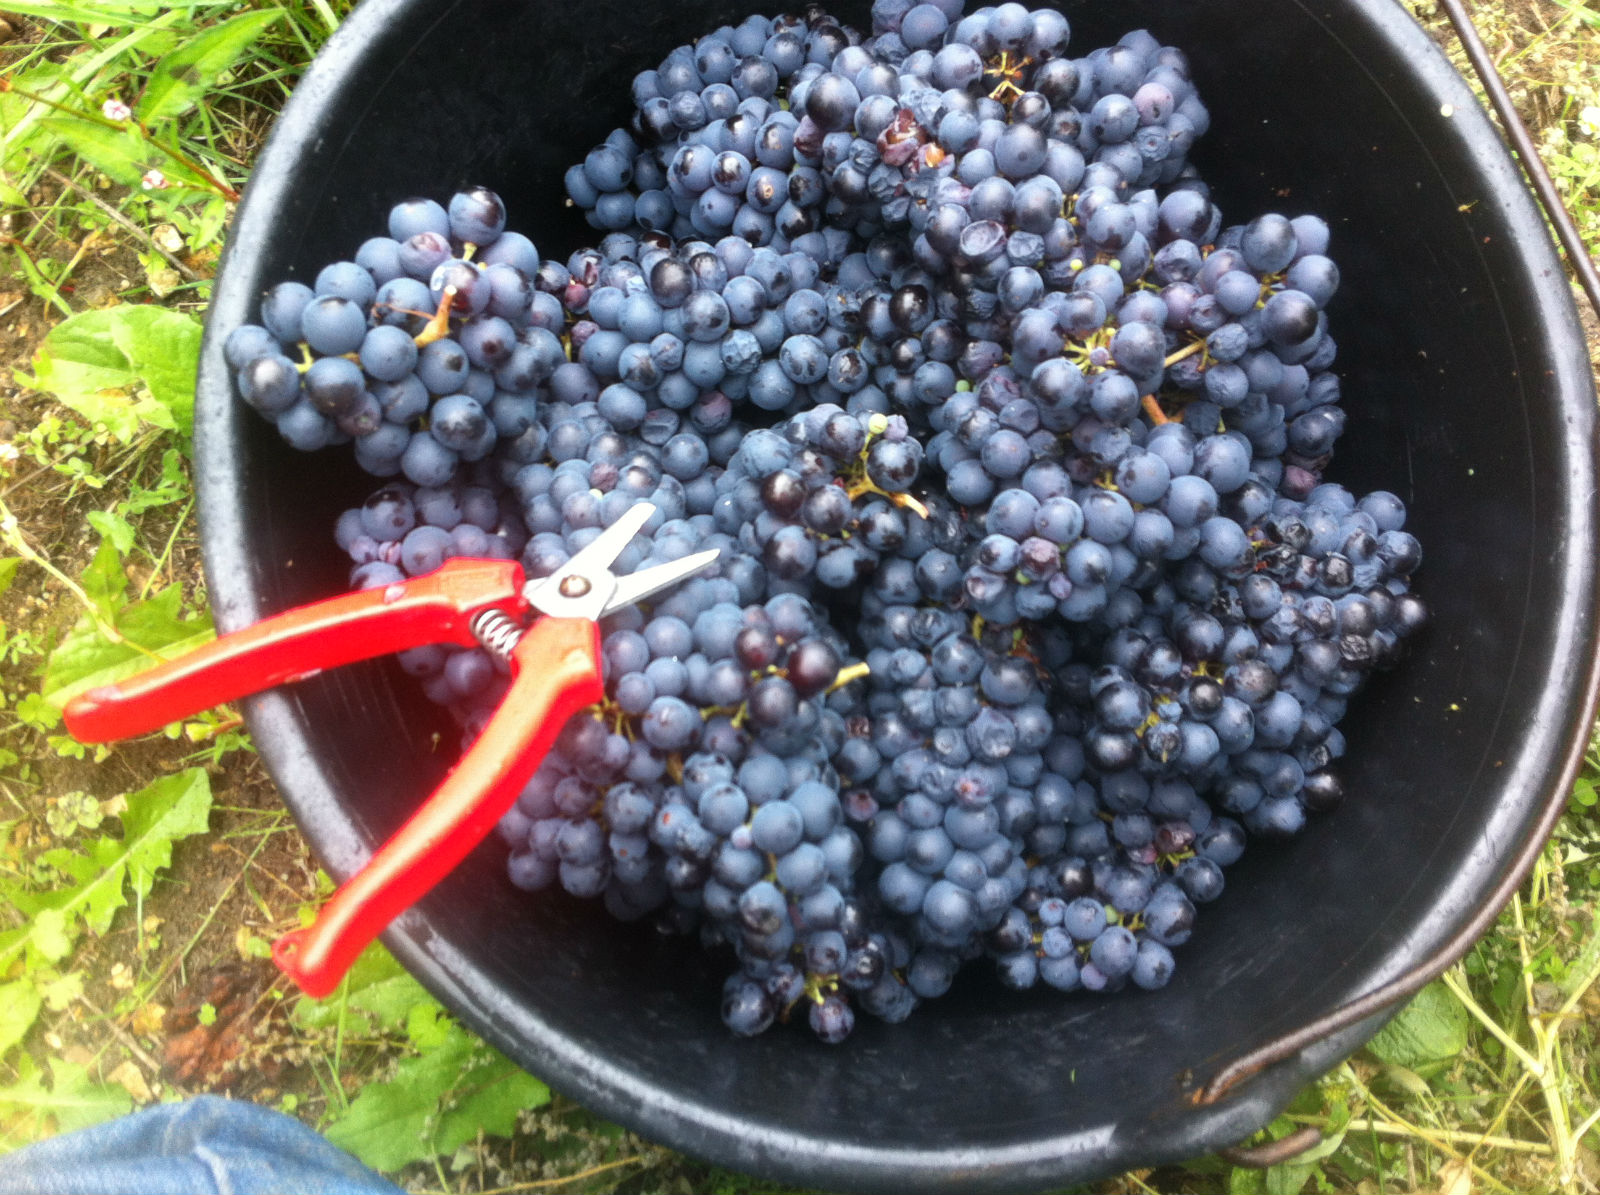 HiP Paris blog. Experiencing the wine harvest in France. Well-tended, hand-raised grapes must also be harvested by hand.